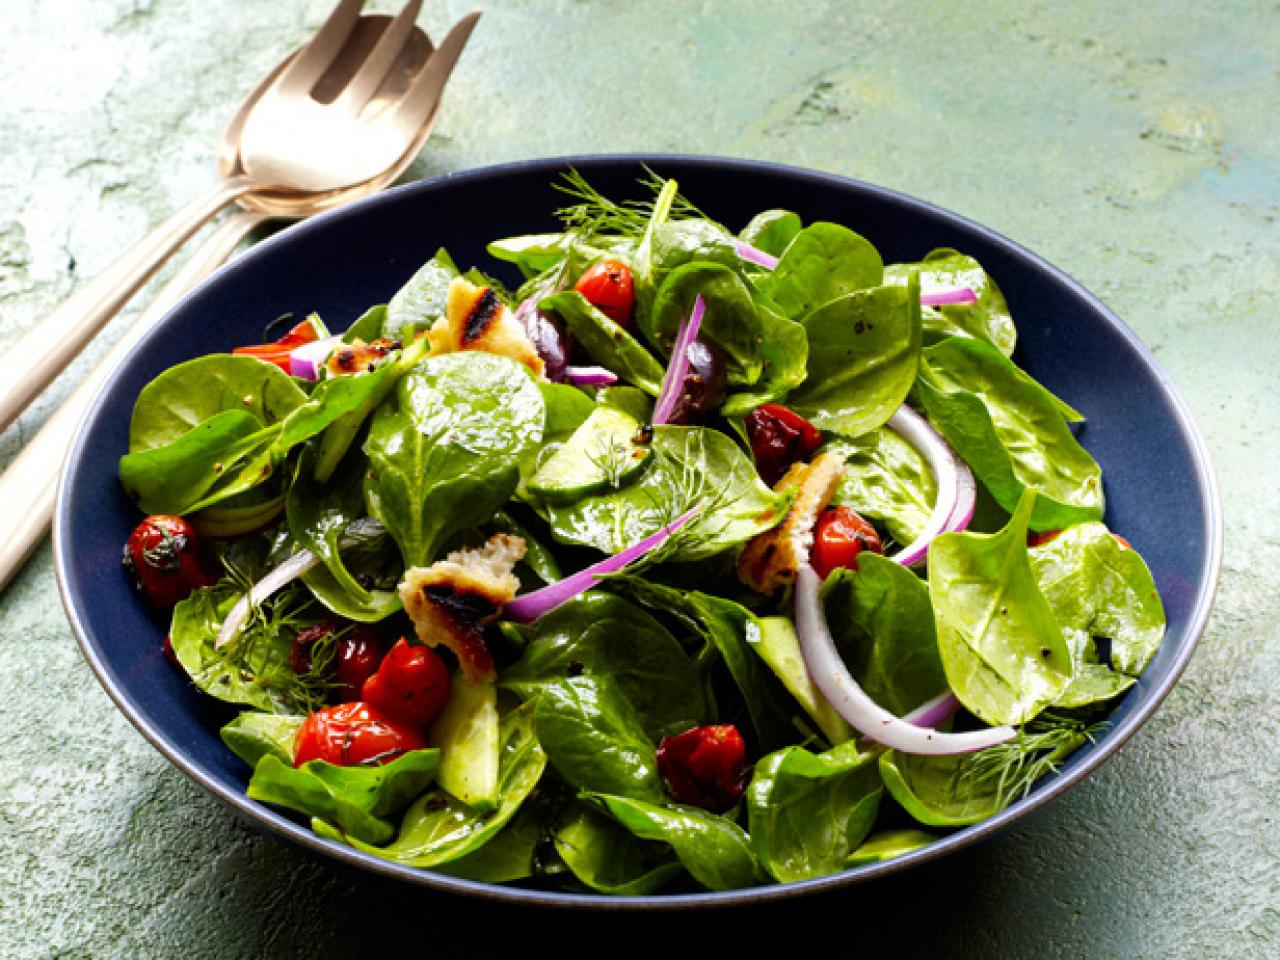 Get Your Green On with Springtastic Side Salads | FN Dish ...